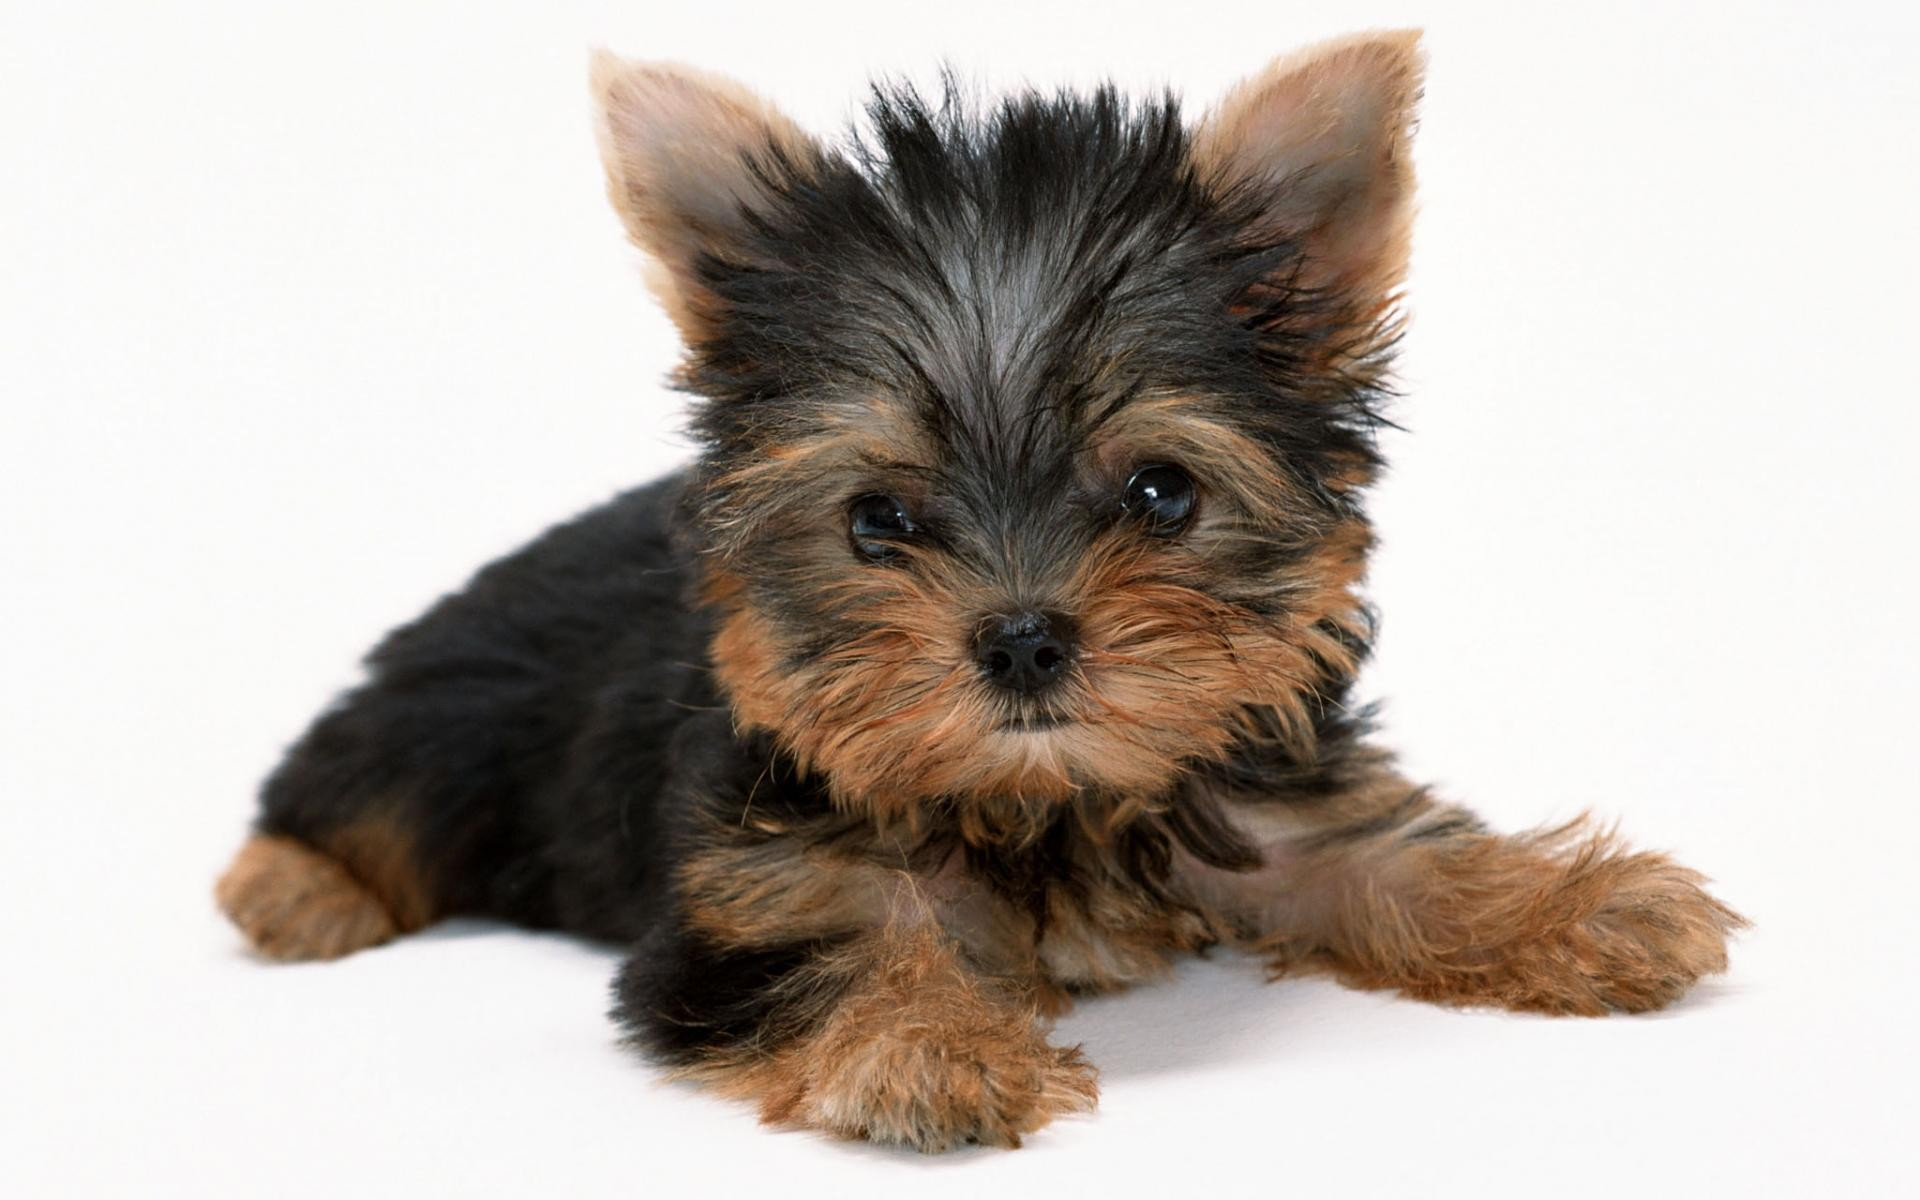 Cute Yorkie Puppies - Wallpaper, High Definition, High ...